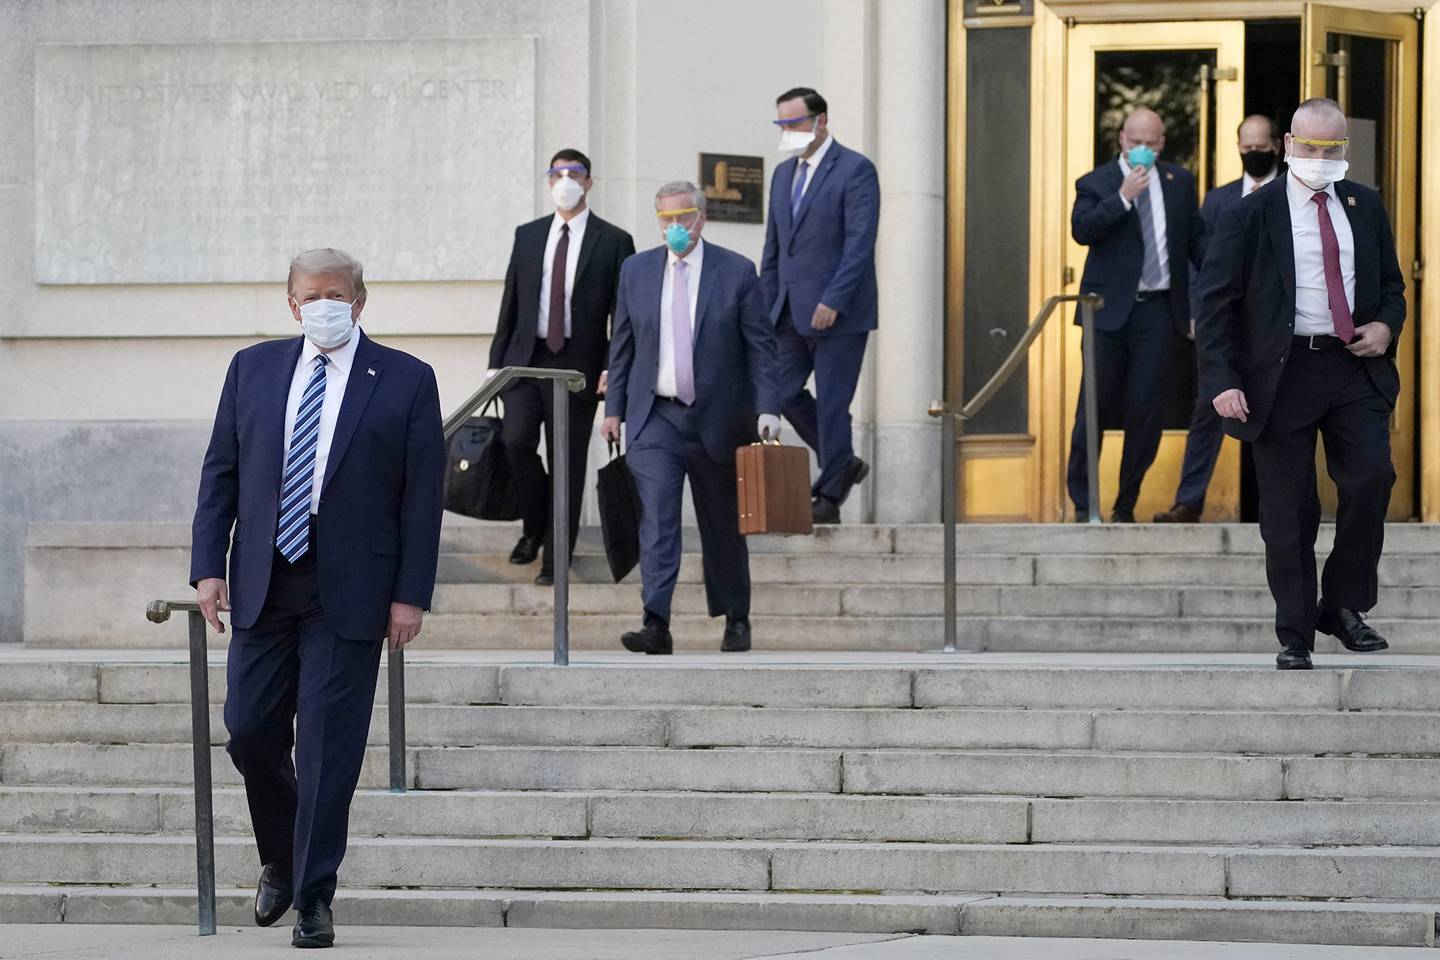 President Donald Trump, left, walks out of Walter Reed National Military Medical Center to return to the White House after receiving treatments for COVID-19, Monday, Oct. 5, 2020, in Bethesda, Md.